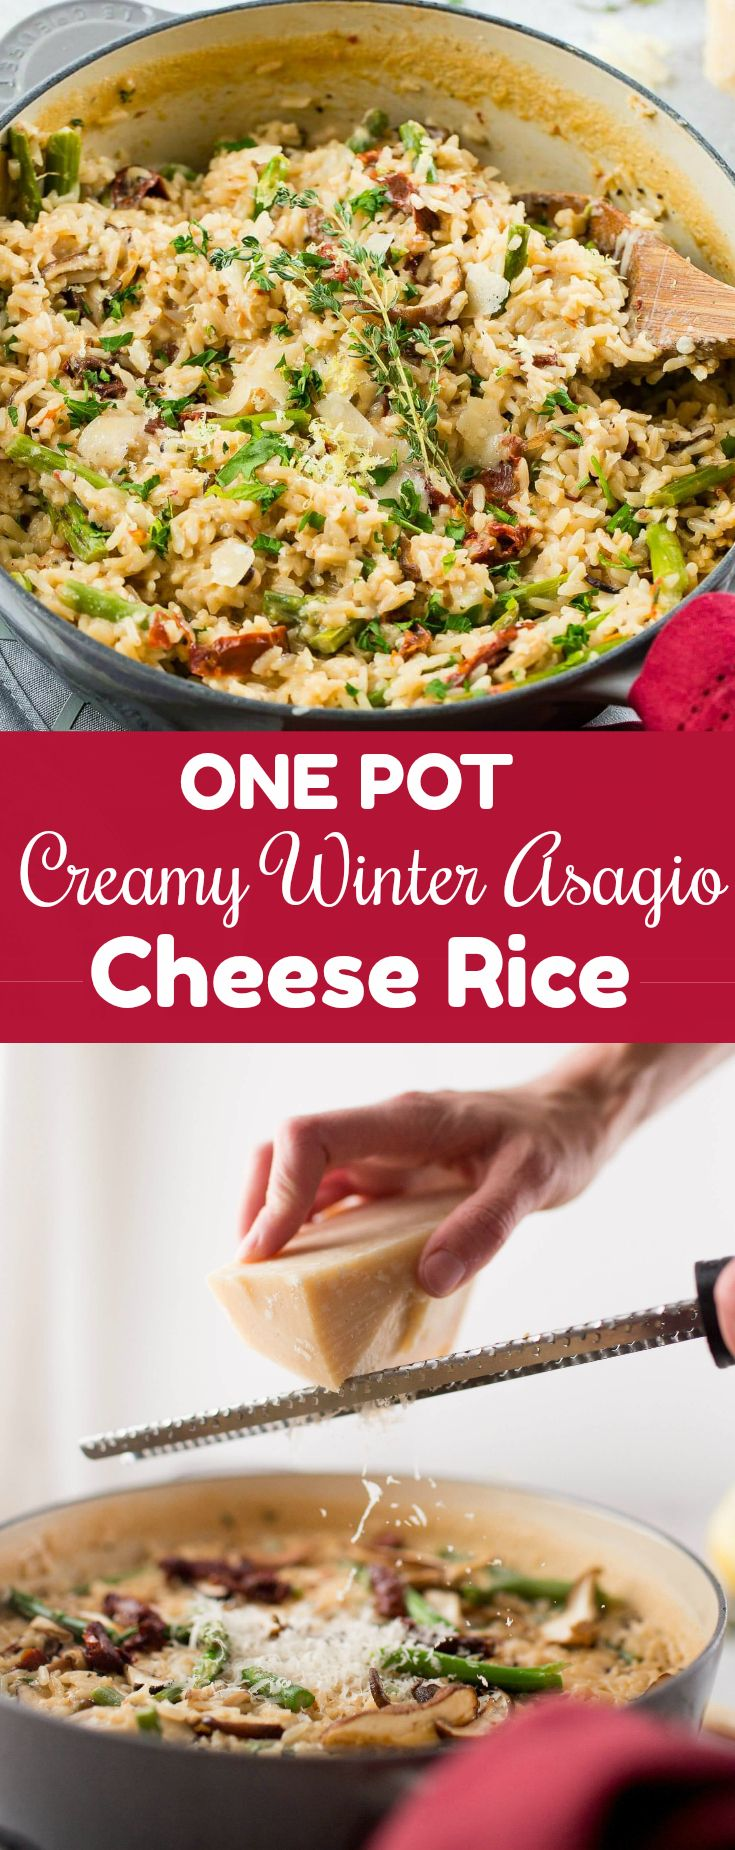 Theholidaysare busy enough without adding in all of the cooking andfamily dinners. Creamy Winter Asiago Cheese Ricewithasparagus and @Knorr Selects is a perfect one pot family meal and great to add your holiday leftovers to! #sponsored #onepot #thanksgiving